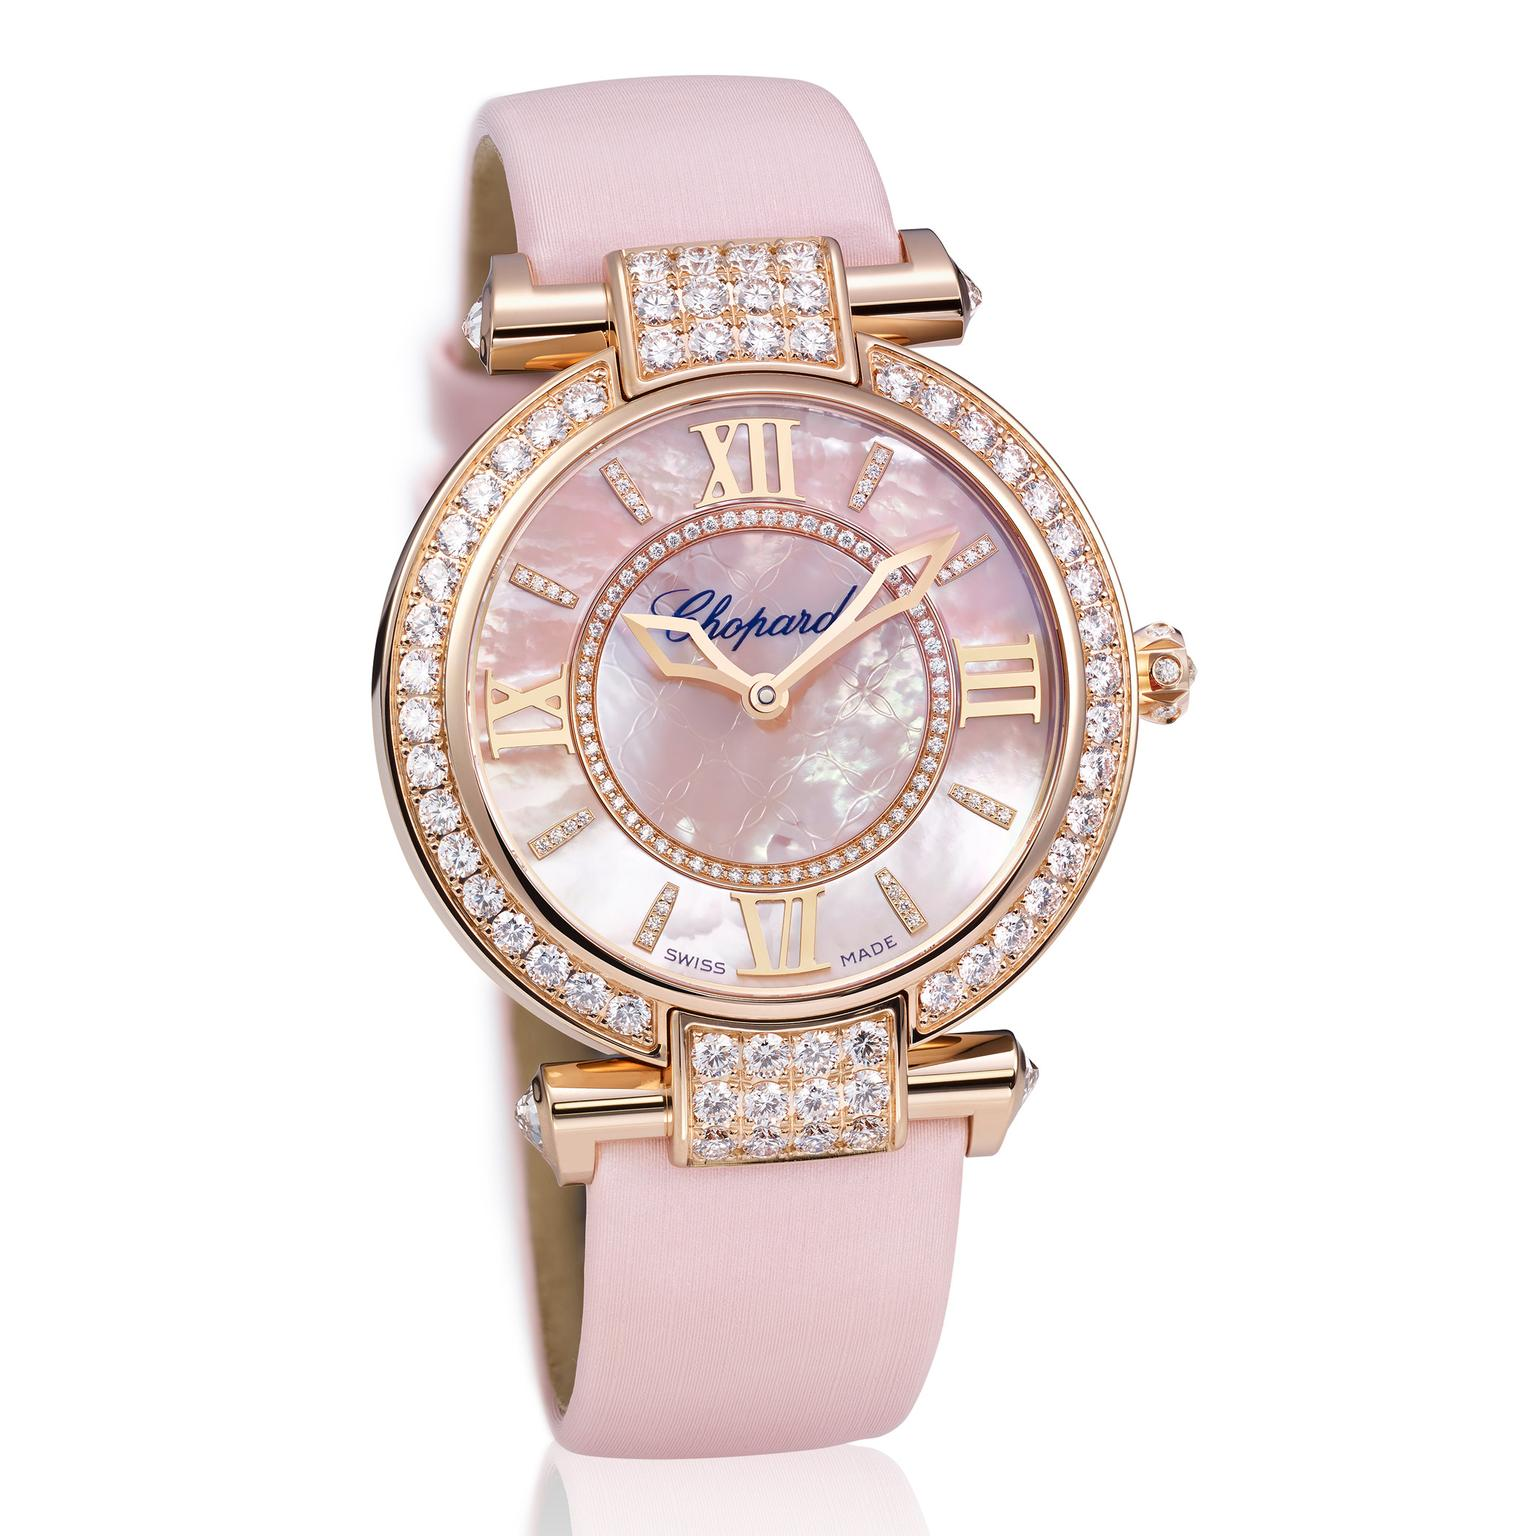 Chopard-Imperiale-Pink-Watch-Zoom